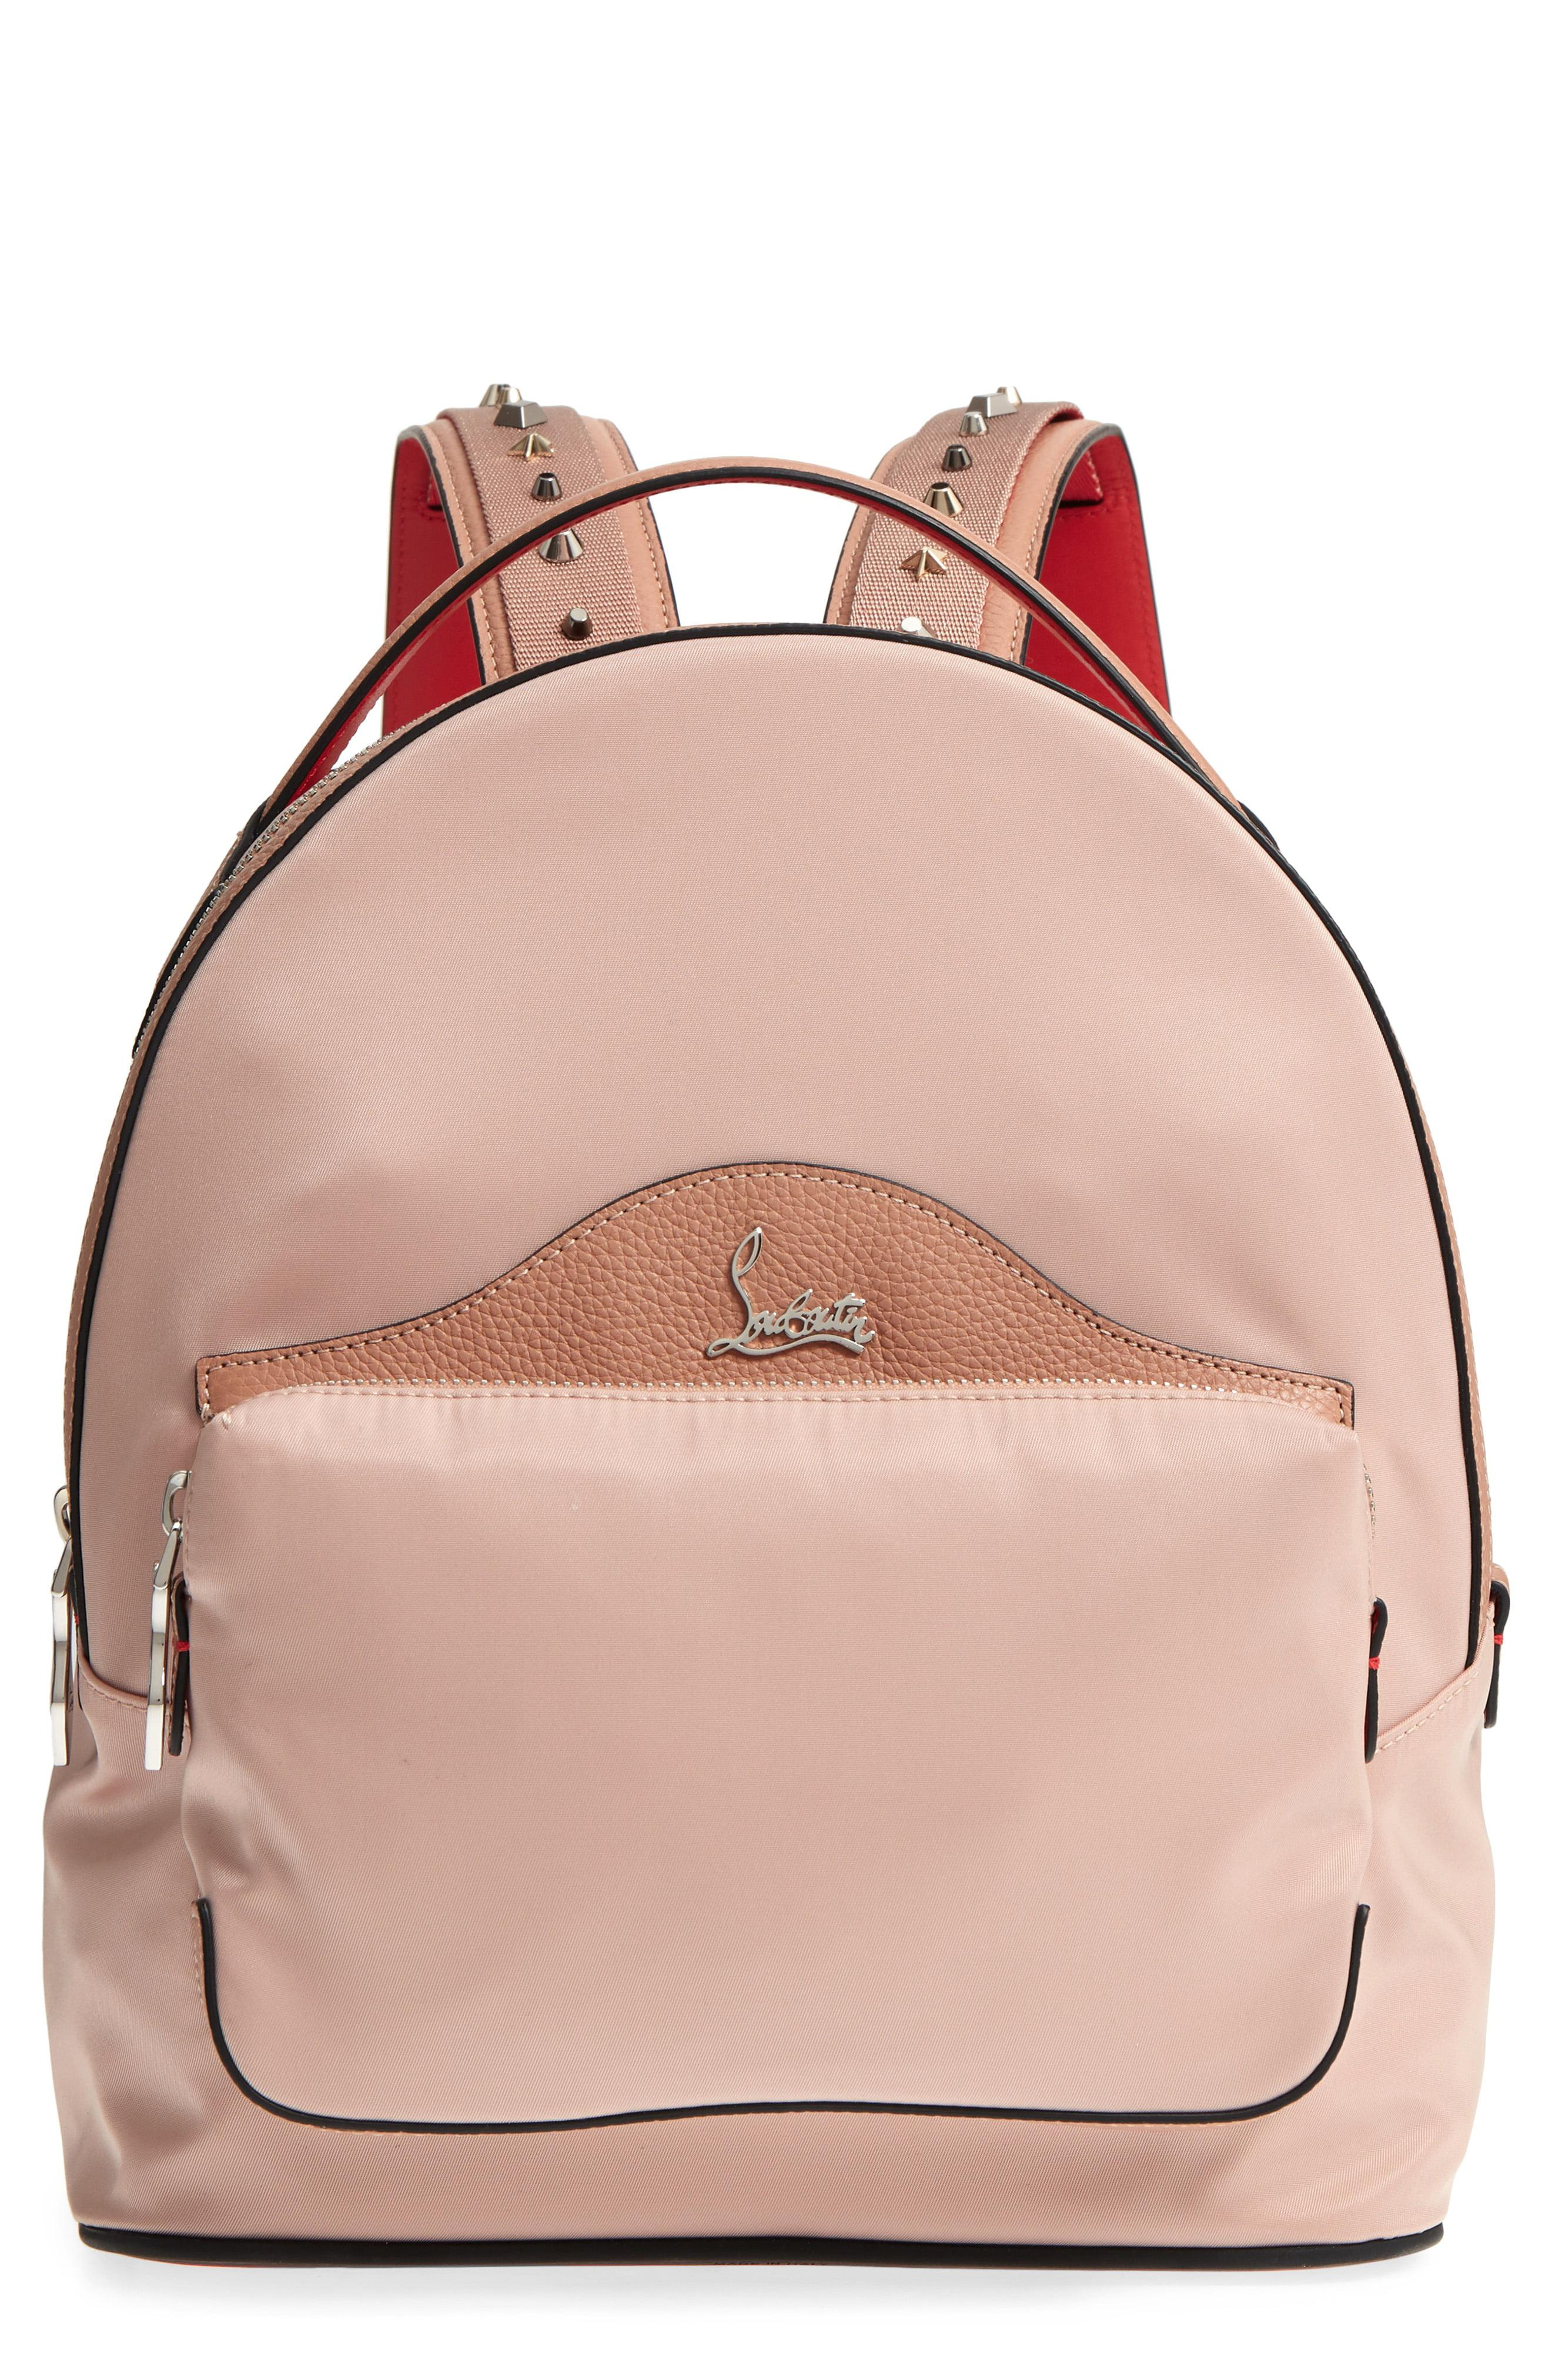 64daafcc64b Lyst - Christian Louboutin Small Backloubi Nylon Backpack in Natural